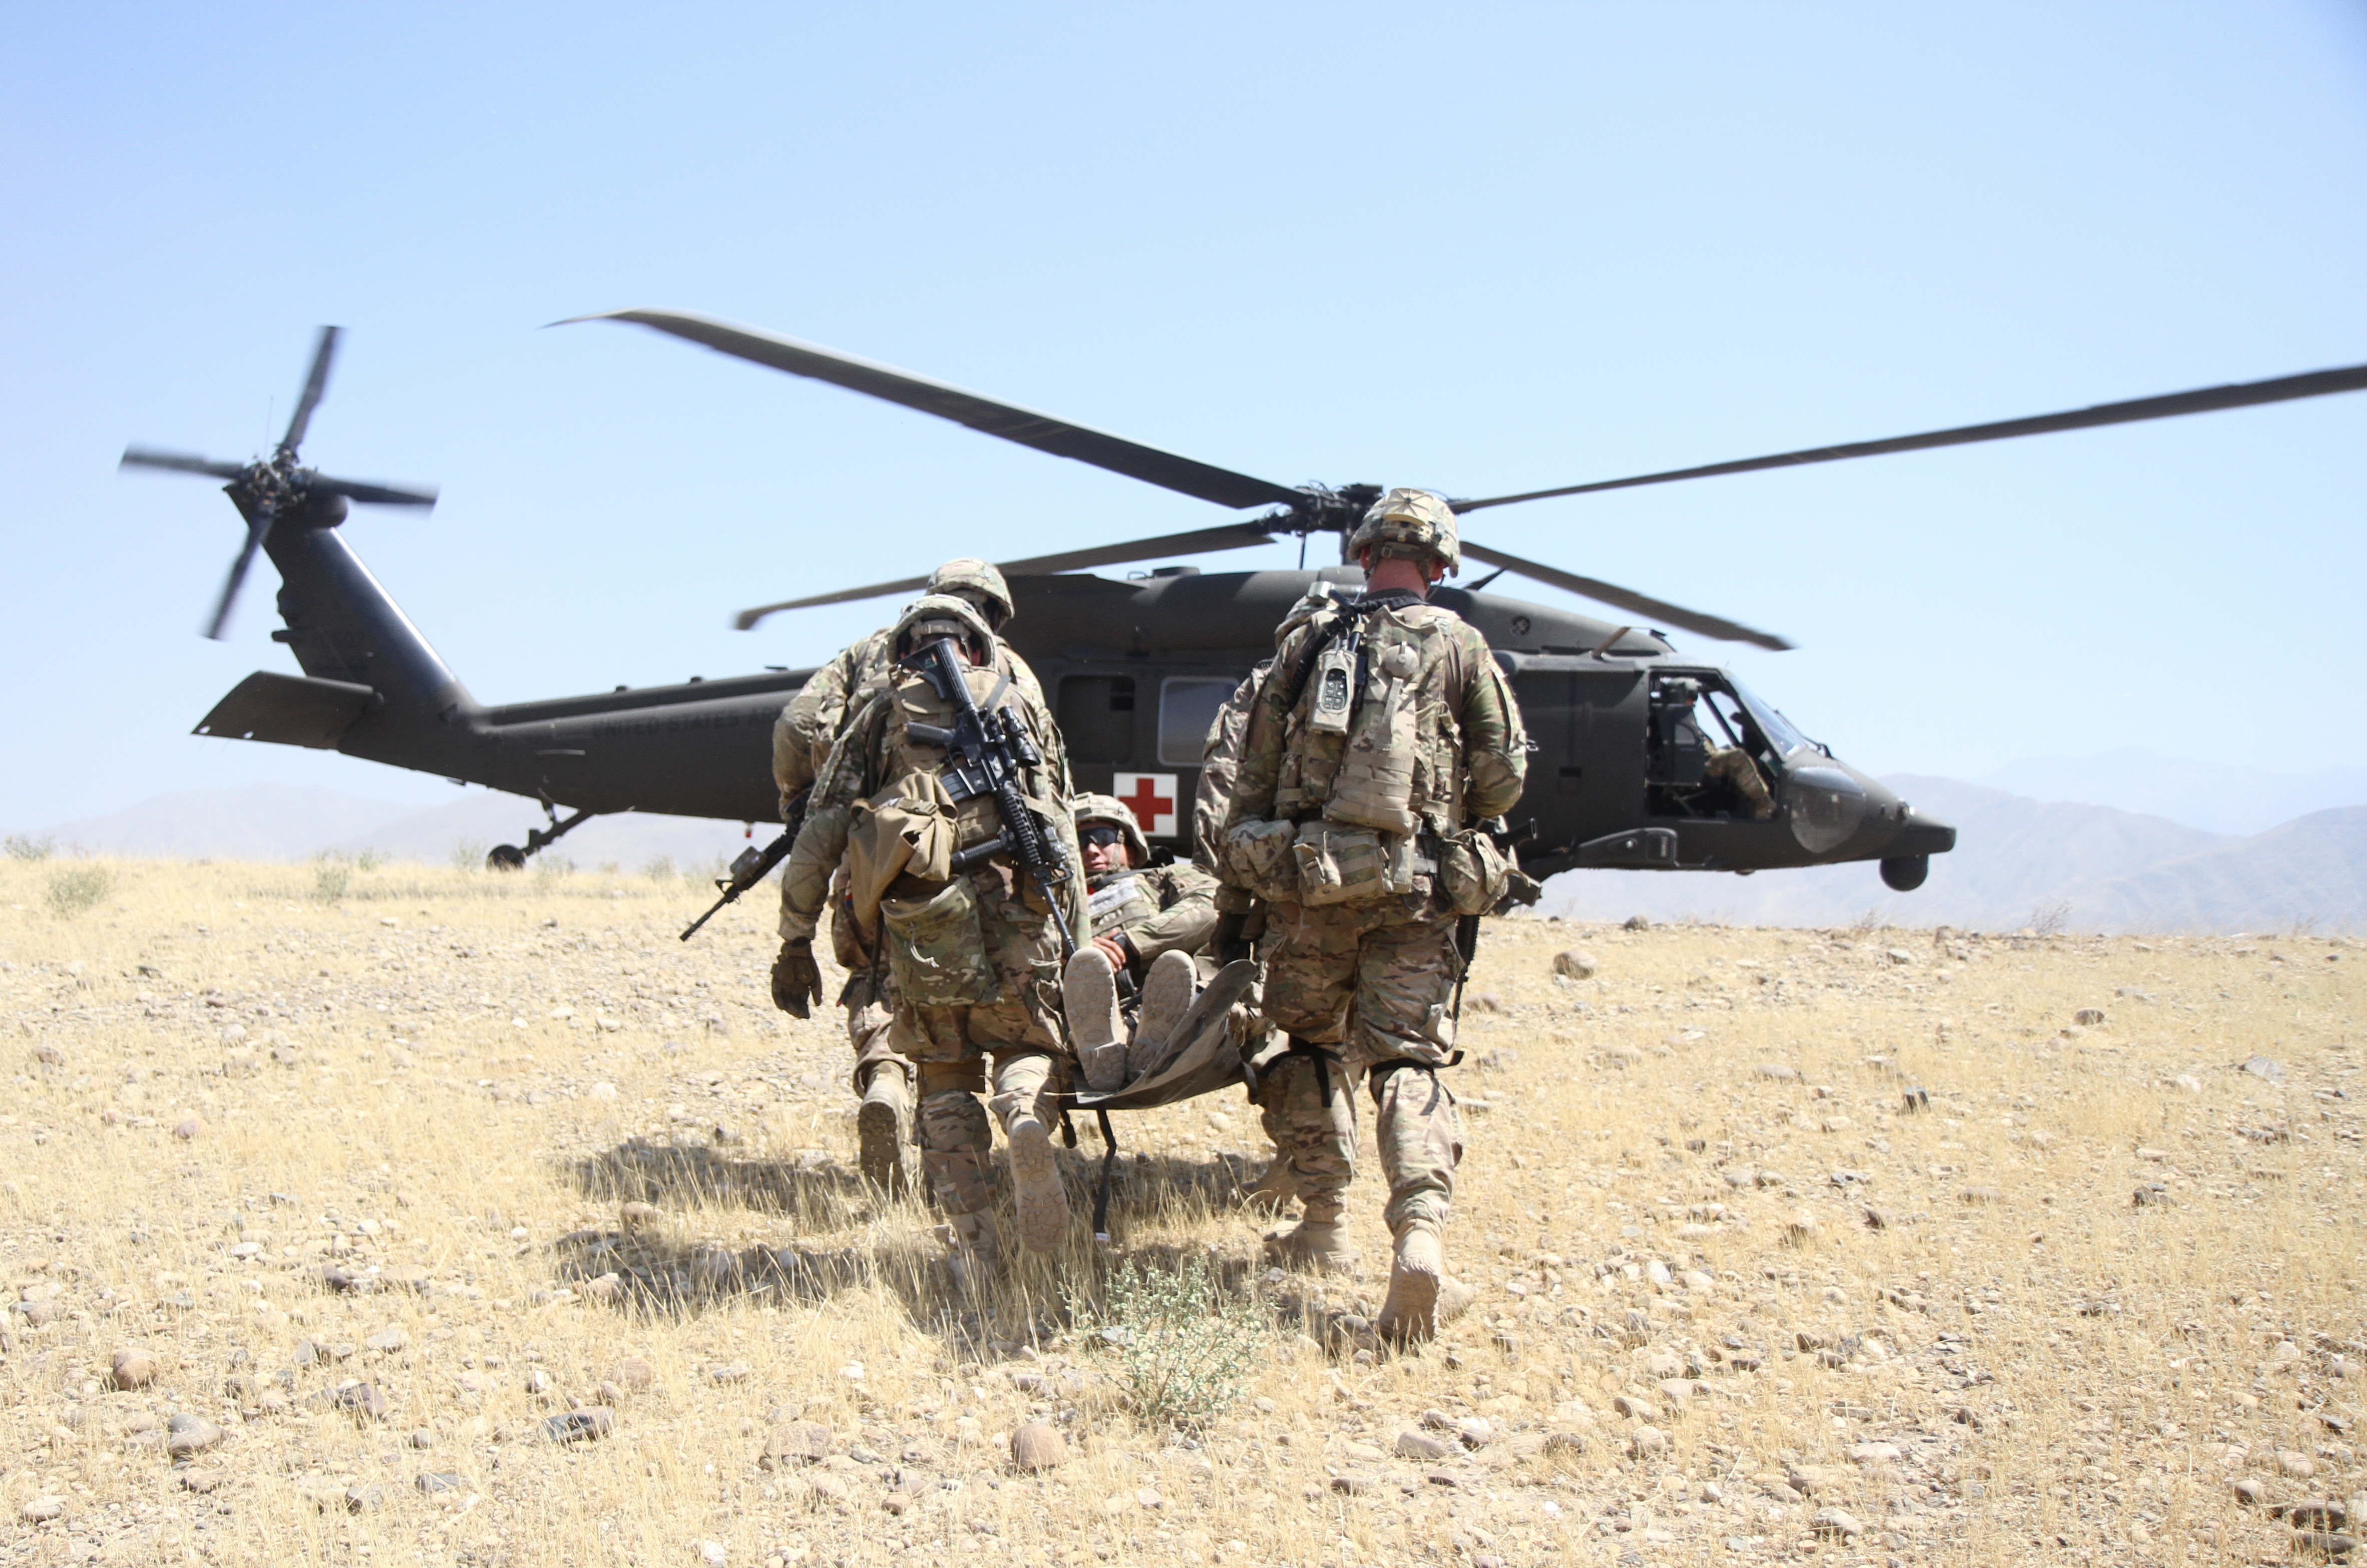 File:Platoon live-fire training in eastern Afghanistan 150703-A